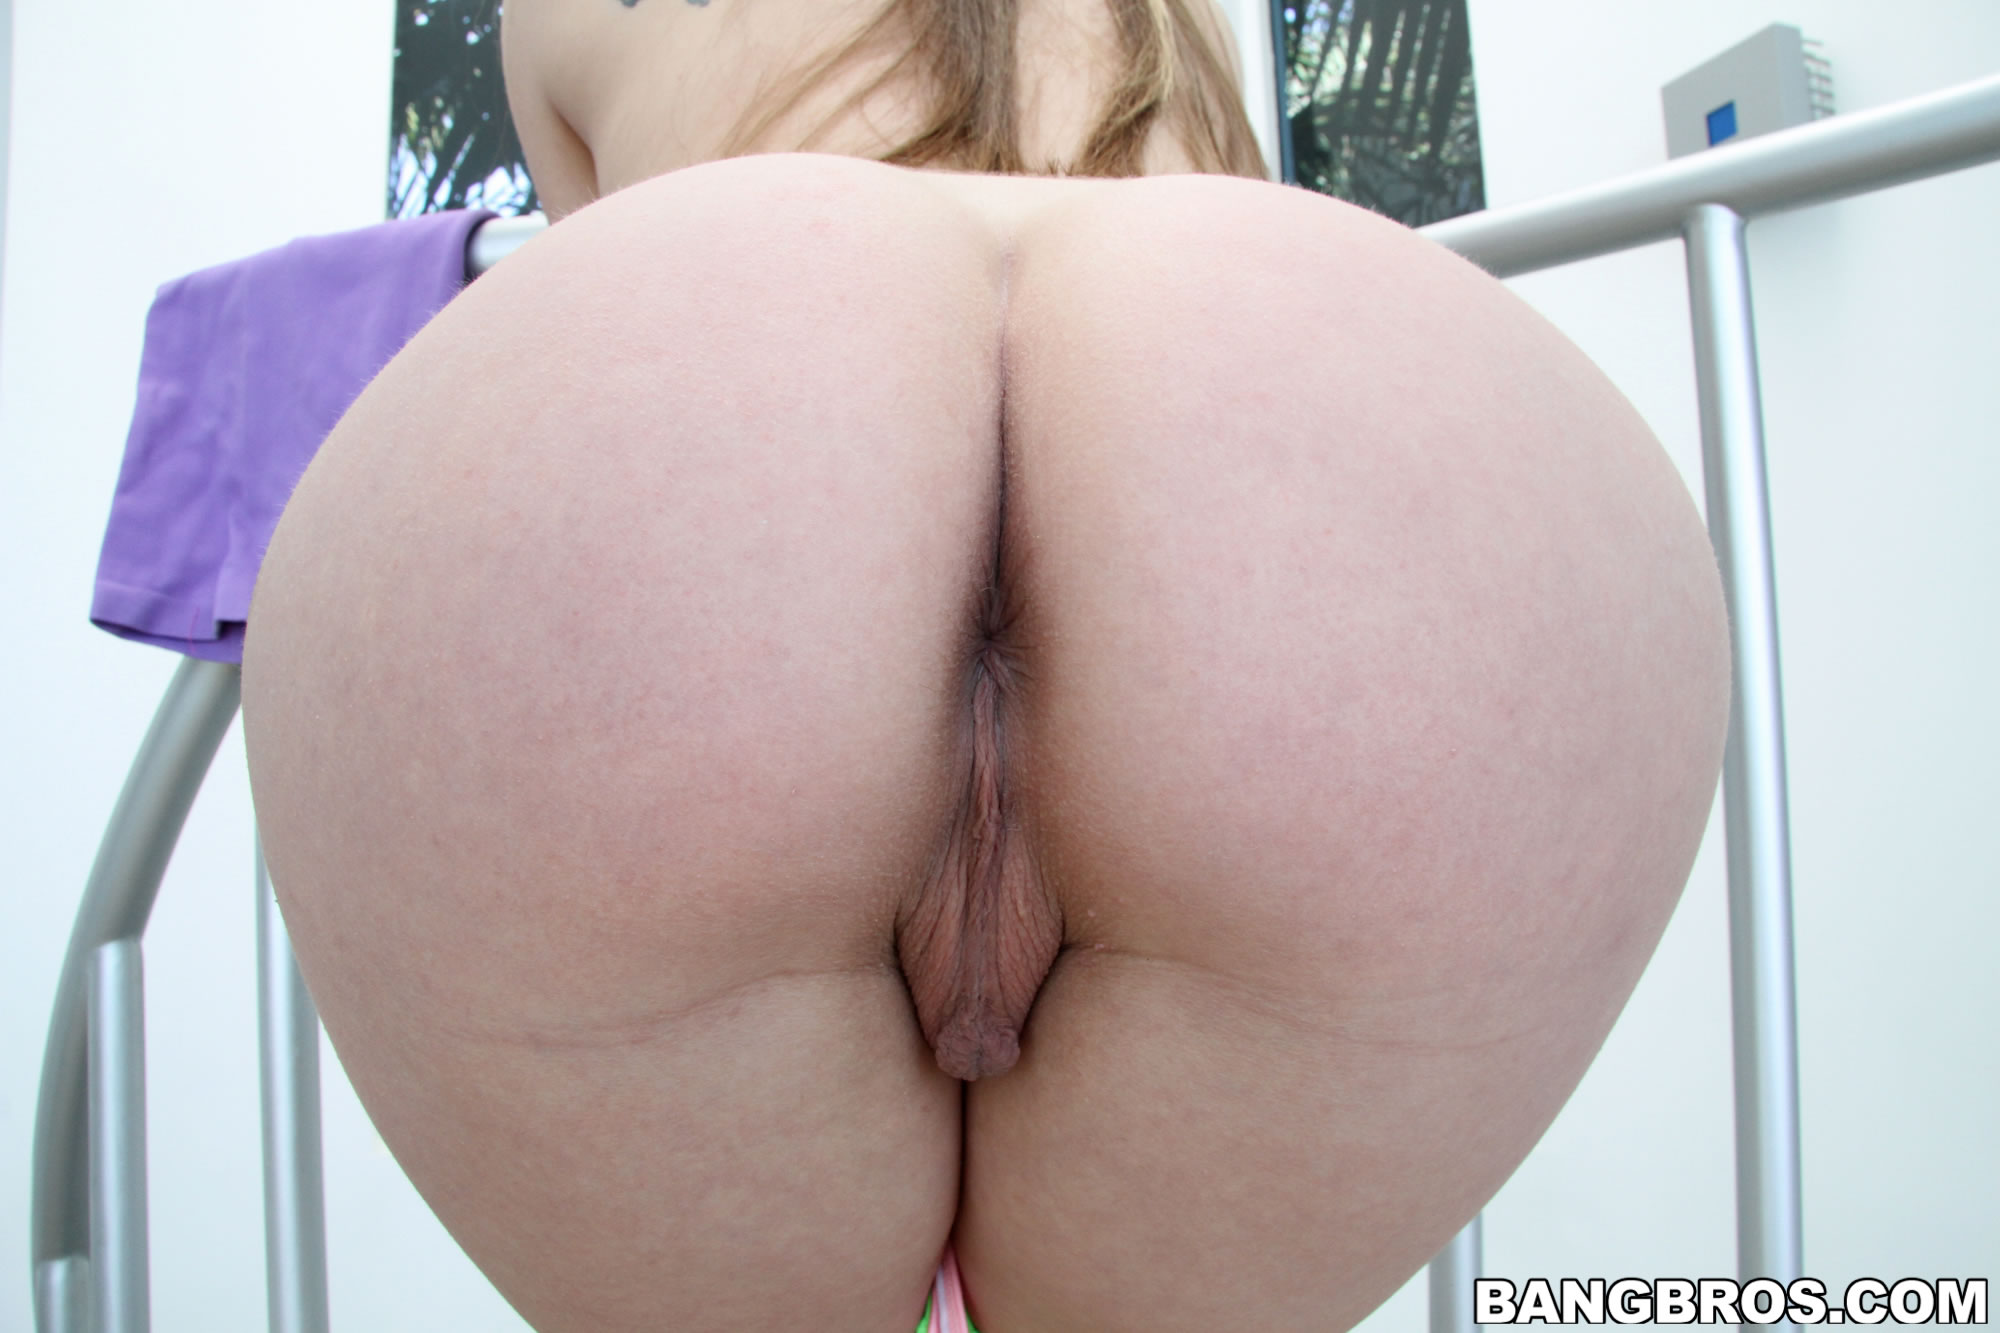 WHITE WOMAN WITH BIG BOOD ASS